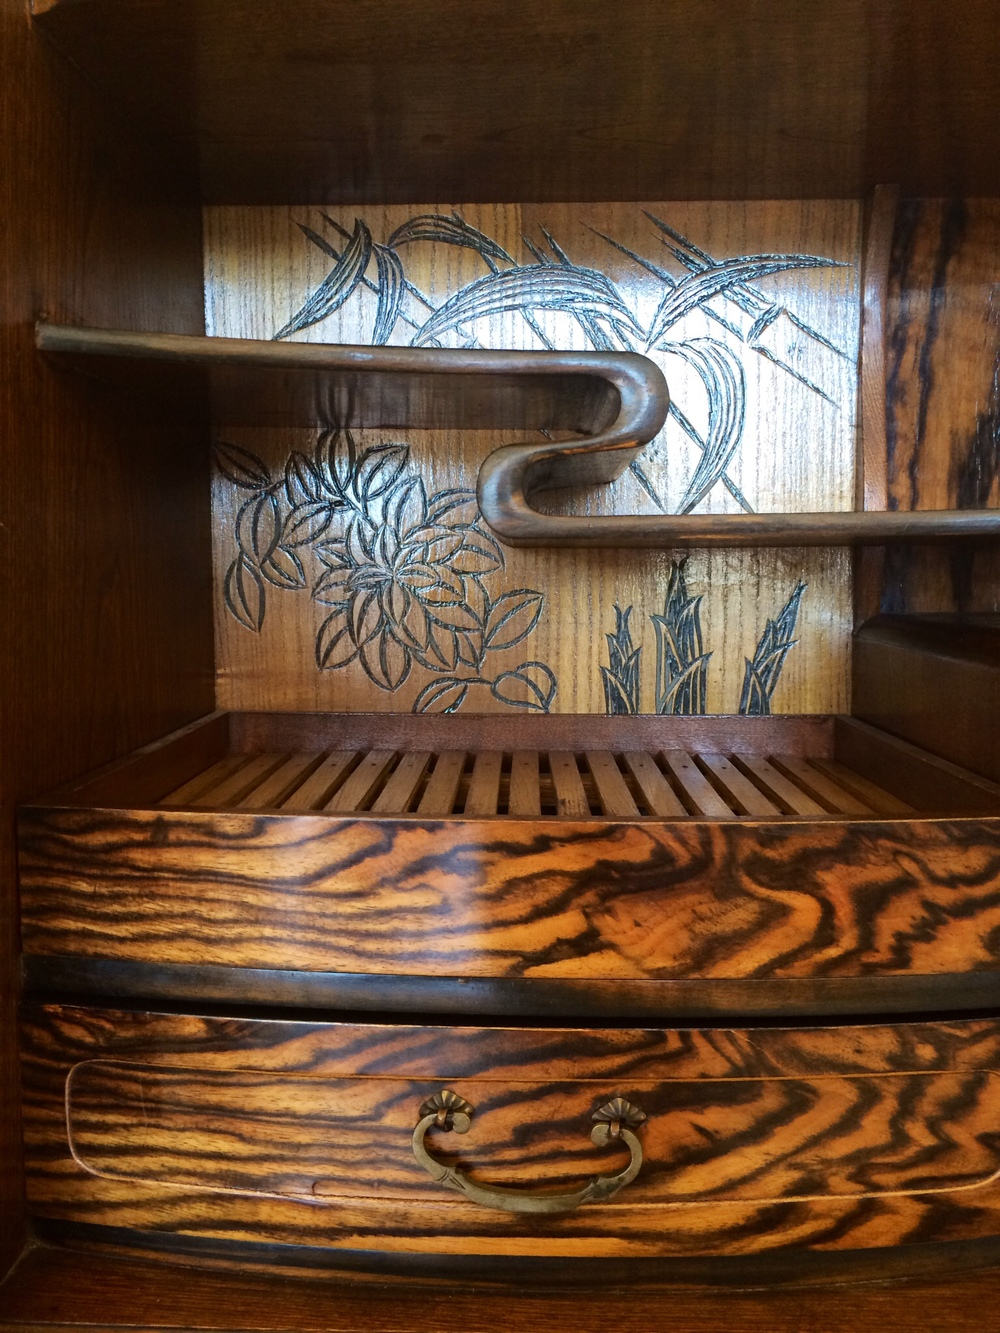 Detail of the beautiful craftsmanship of this persimmon wood tea cabinet.